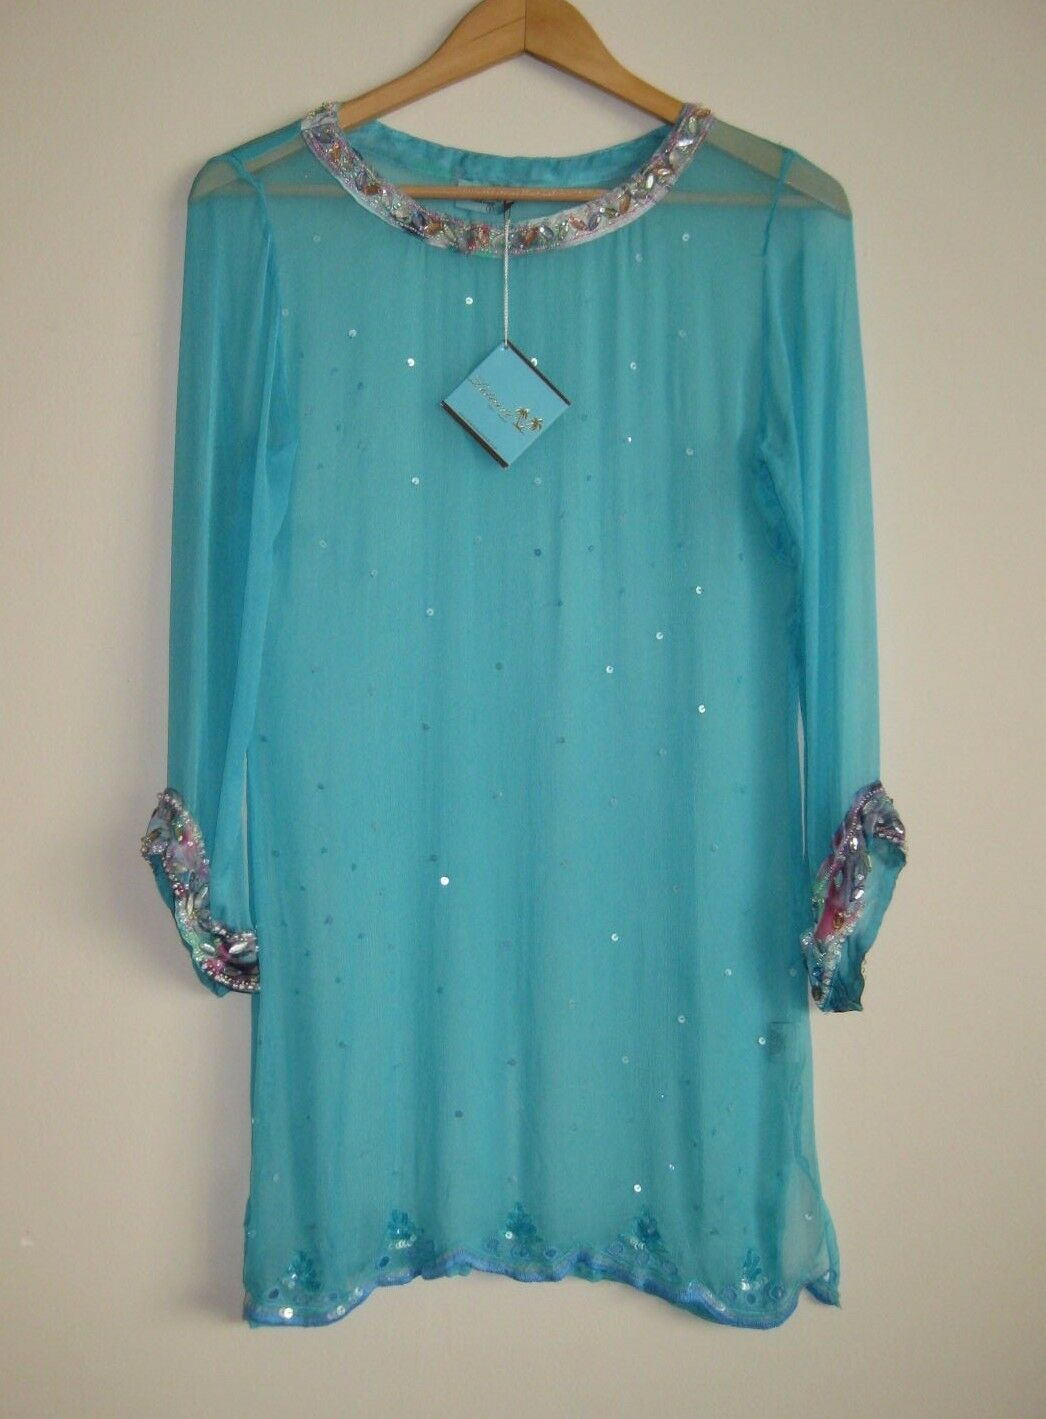 LETARTE Aqua Beaded Long Sleeve Silk Top Tunic Cover Up Size S NWT  288